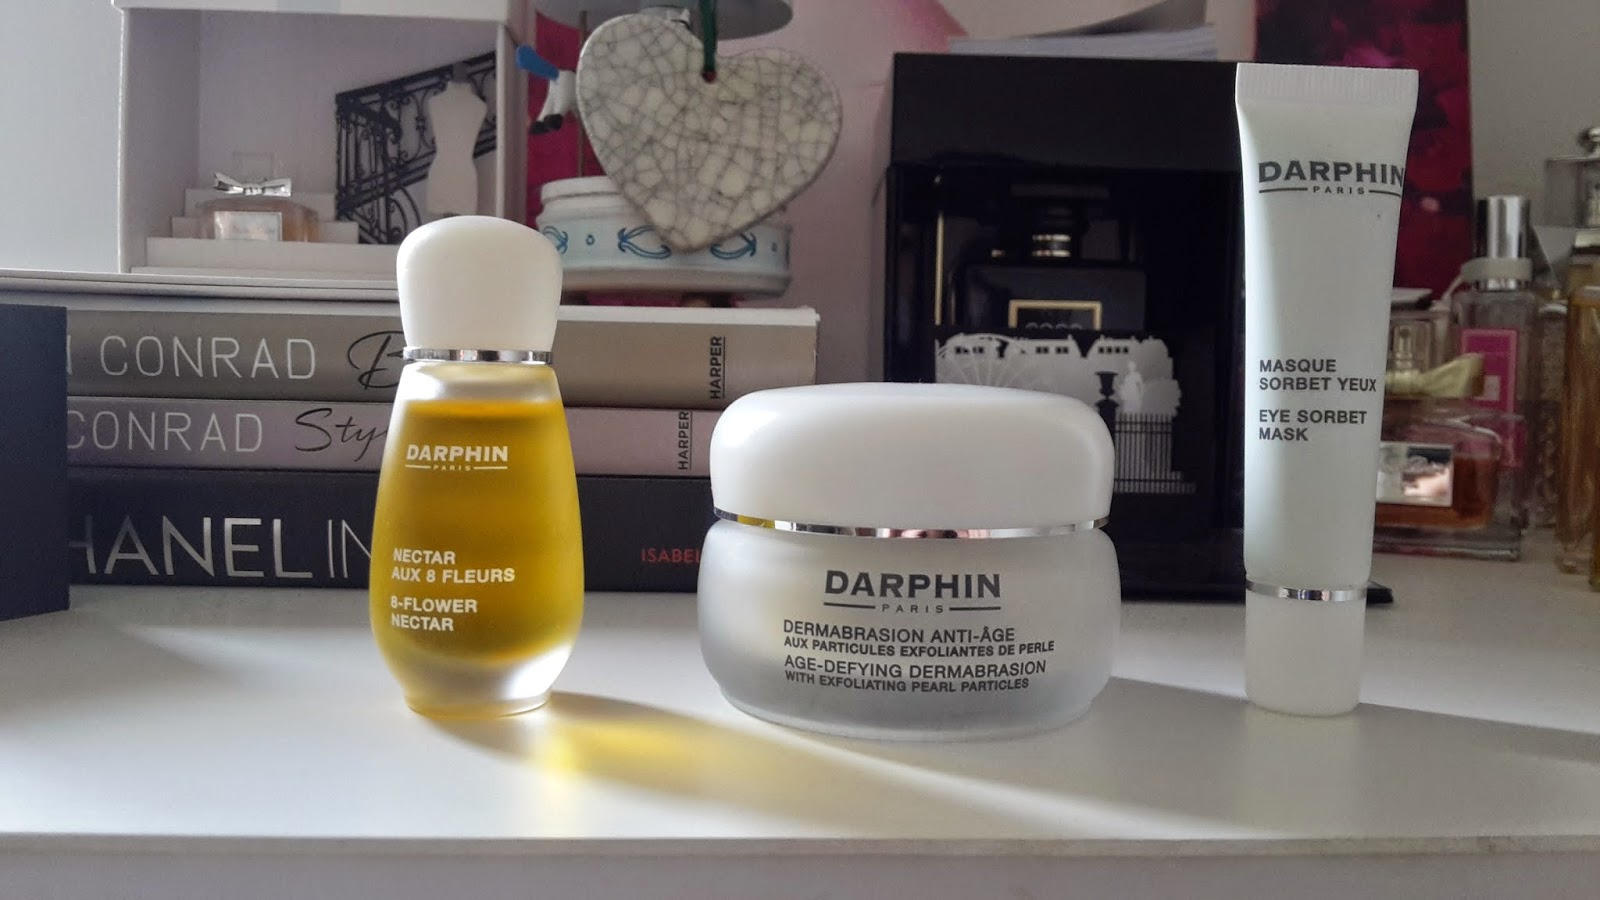 prodotti beauty skin care creme viso top 2014, darphin